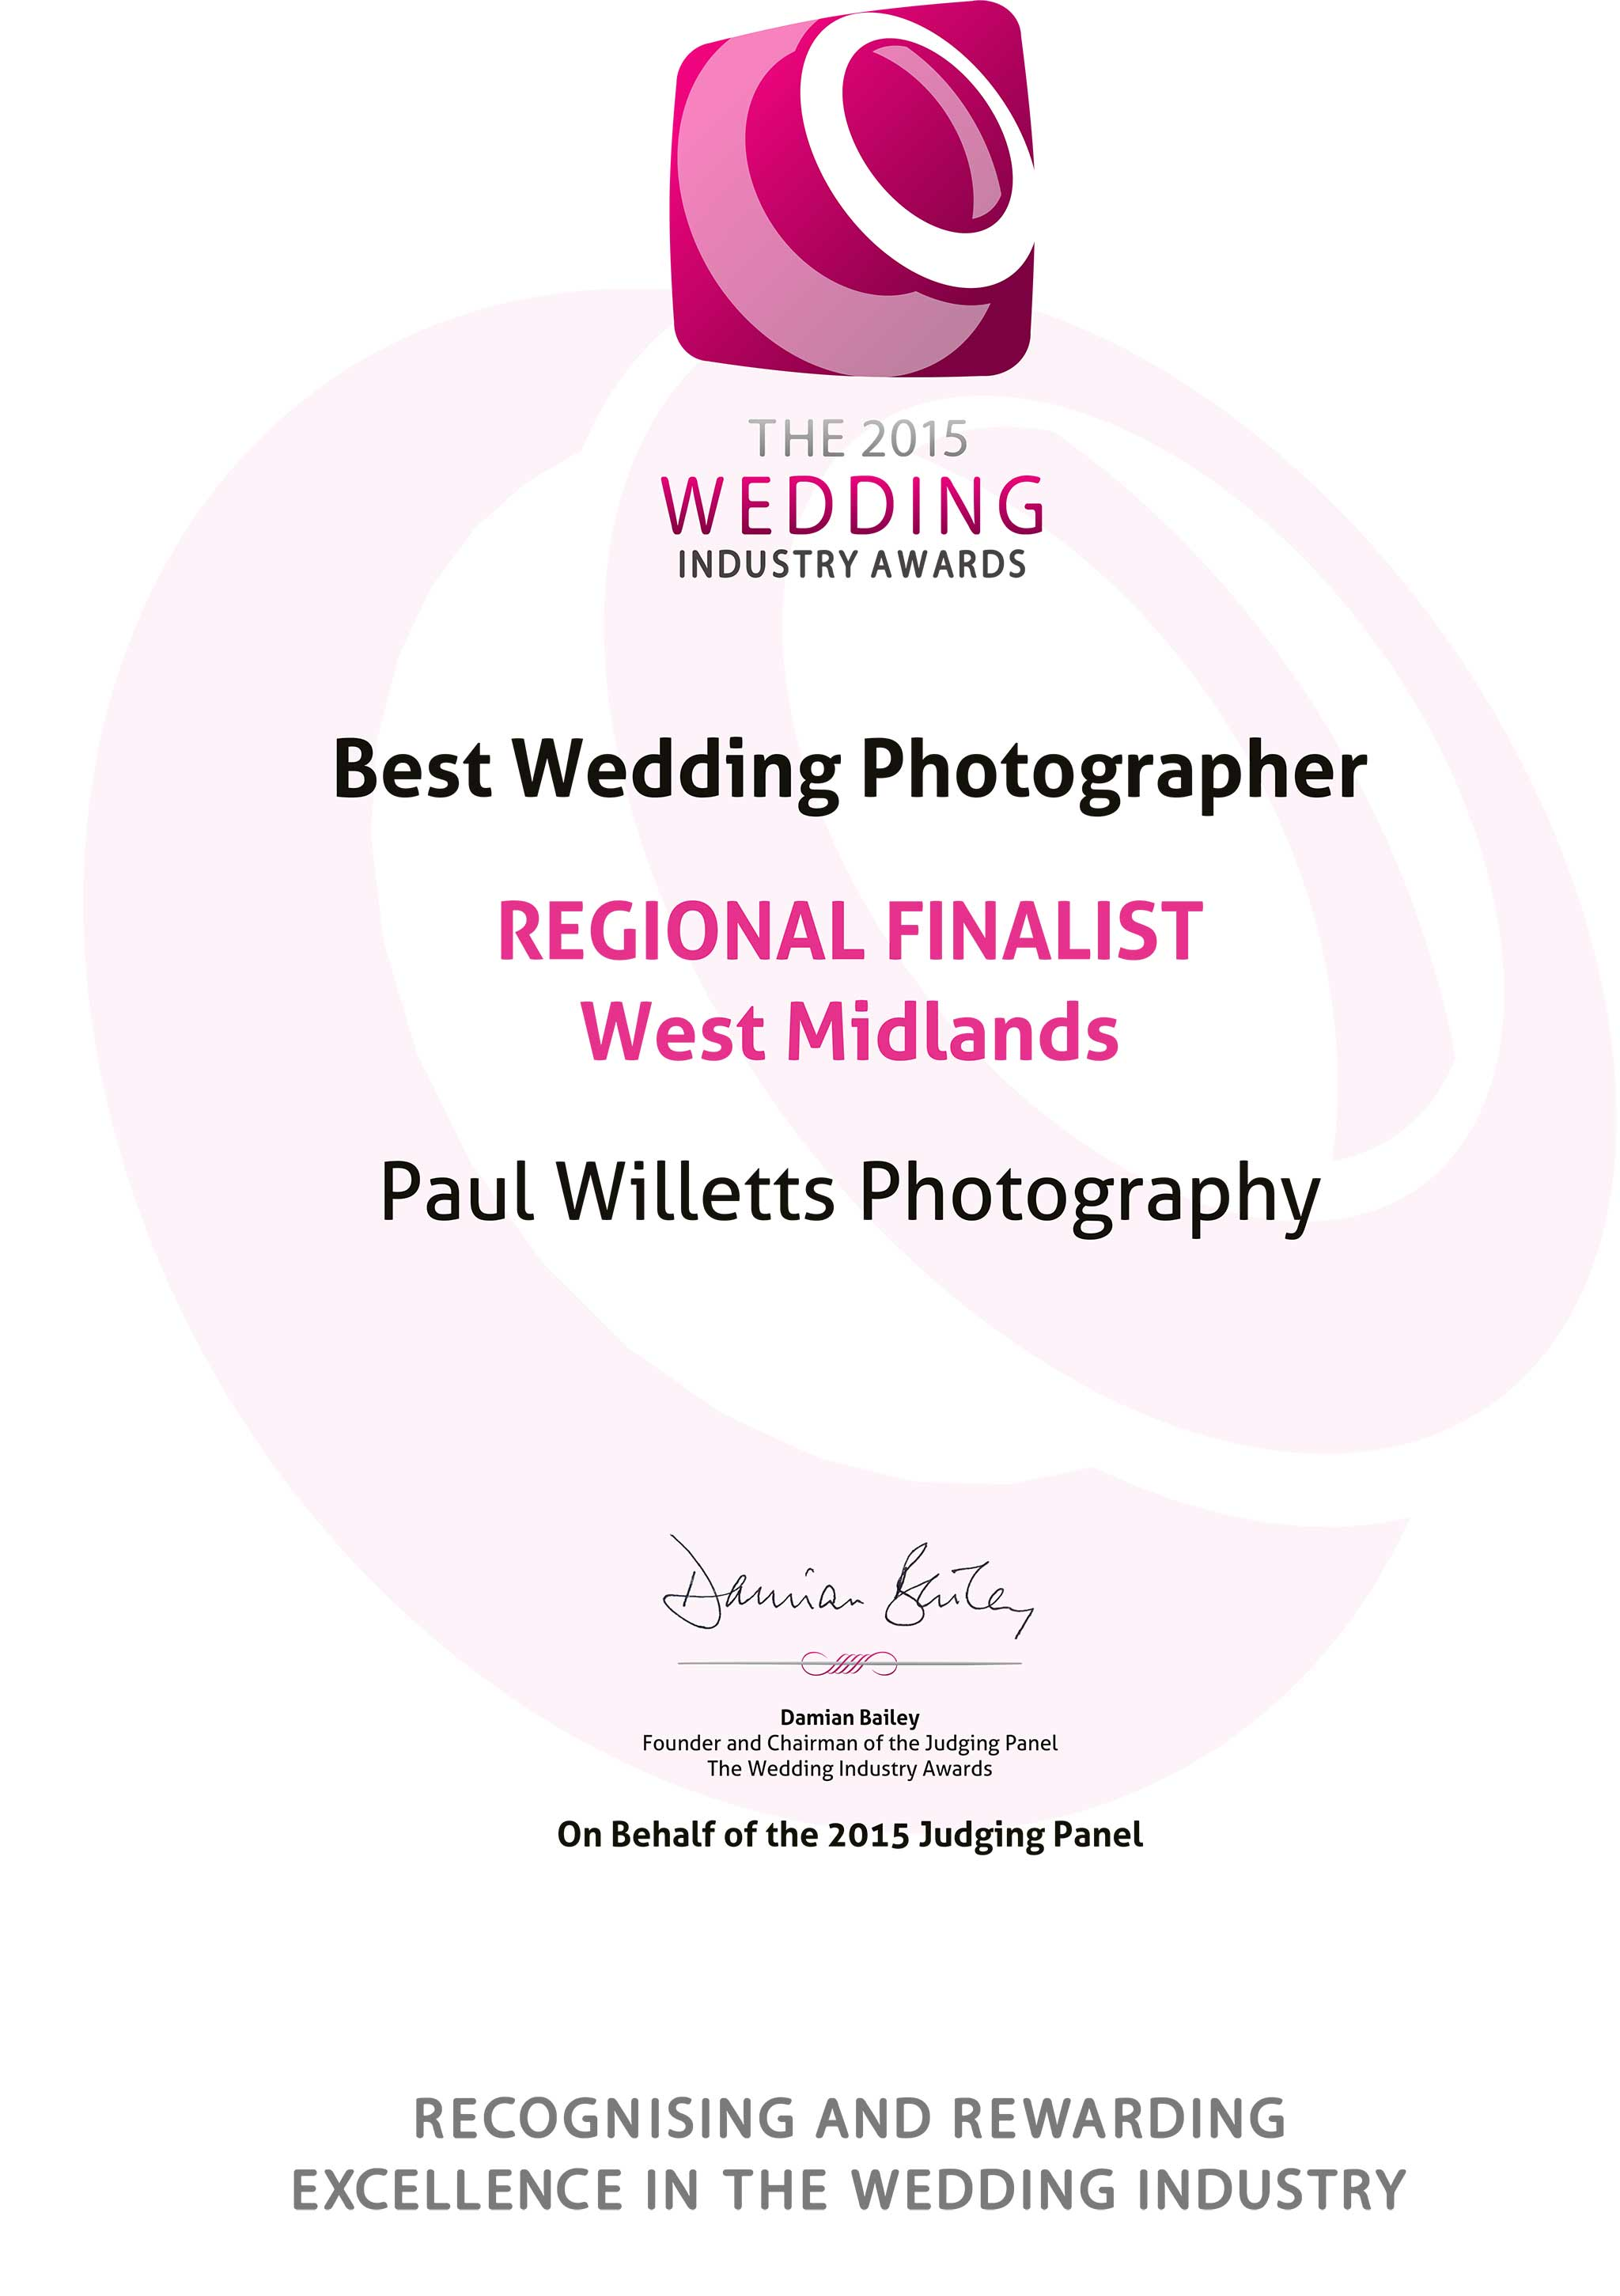 paul-willetts-photography-regional-finalist-west-midlands